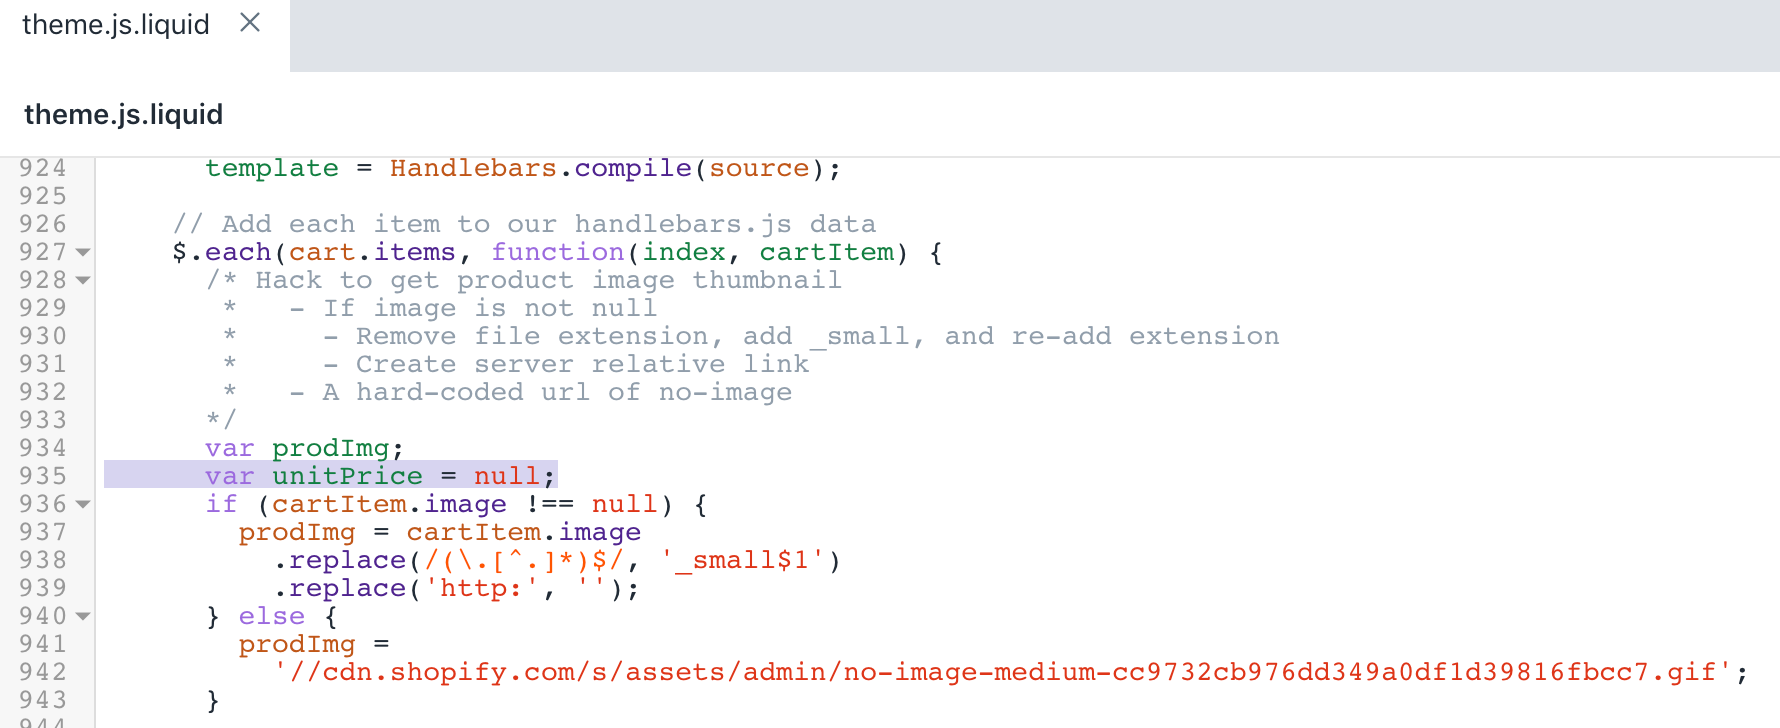 The updated version of the theme.js.liquid file